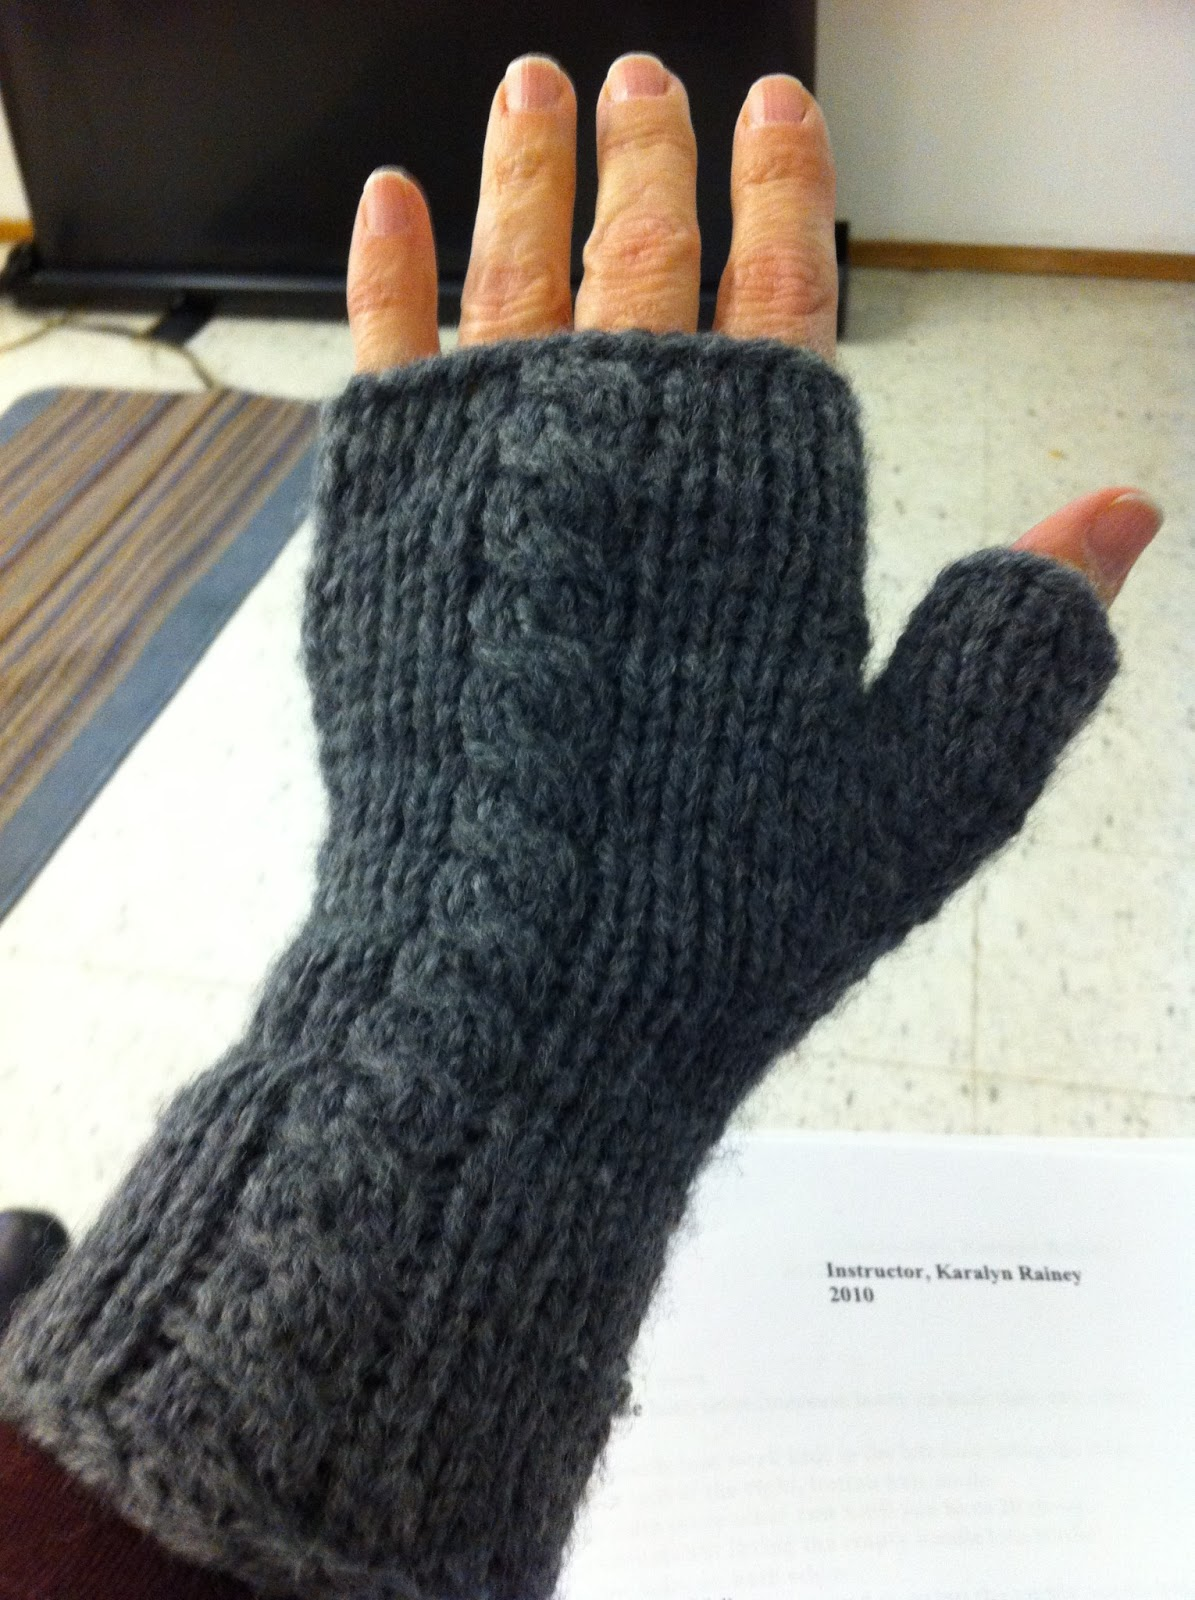 Machine Knitting Fun: Fingerless Gloves by Karalyn